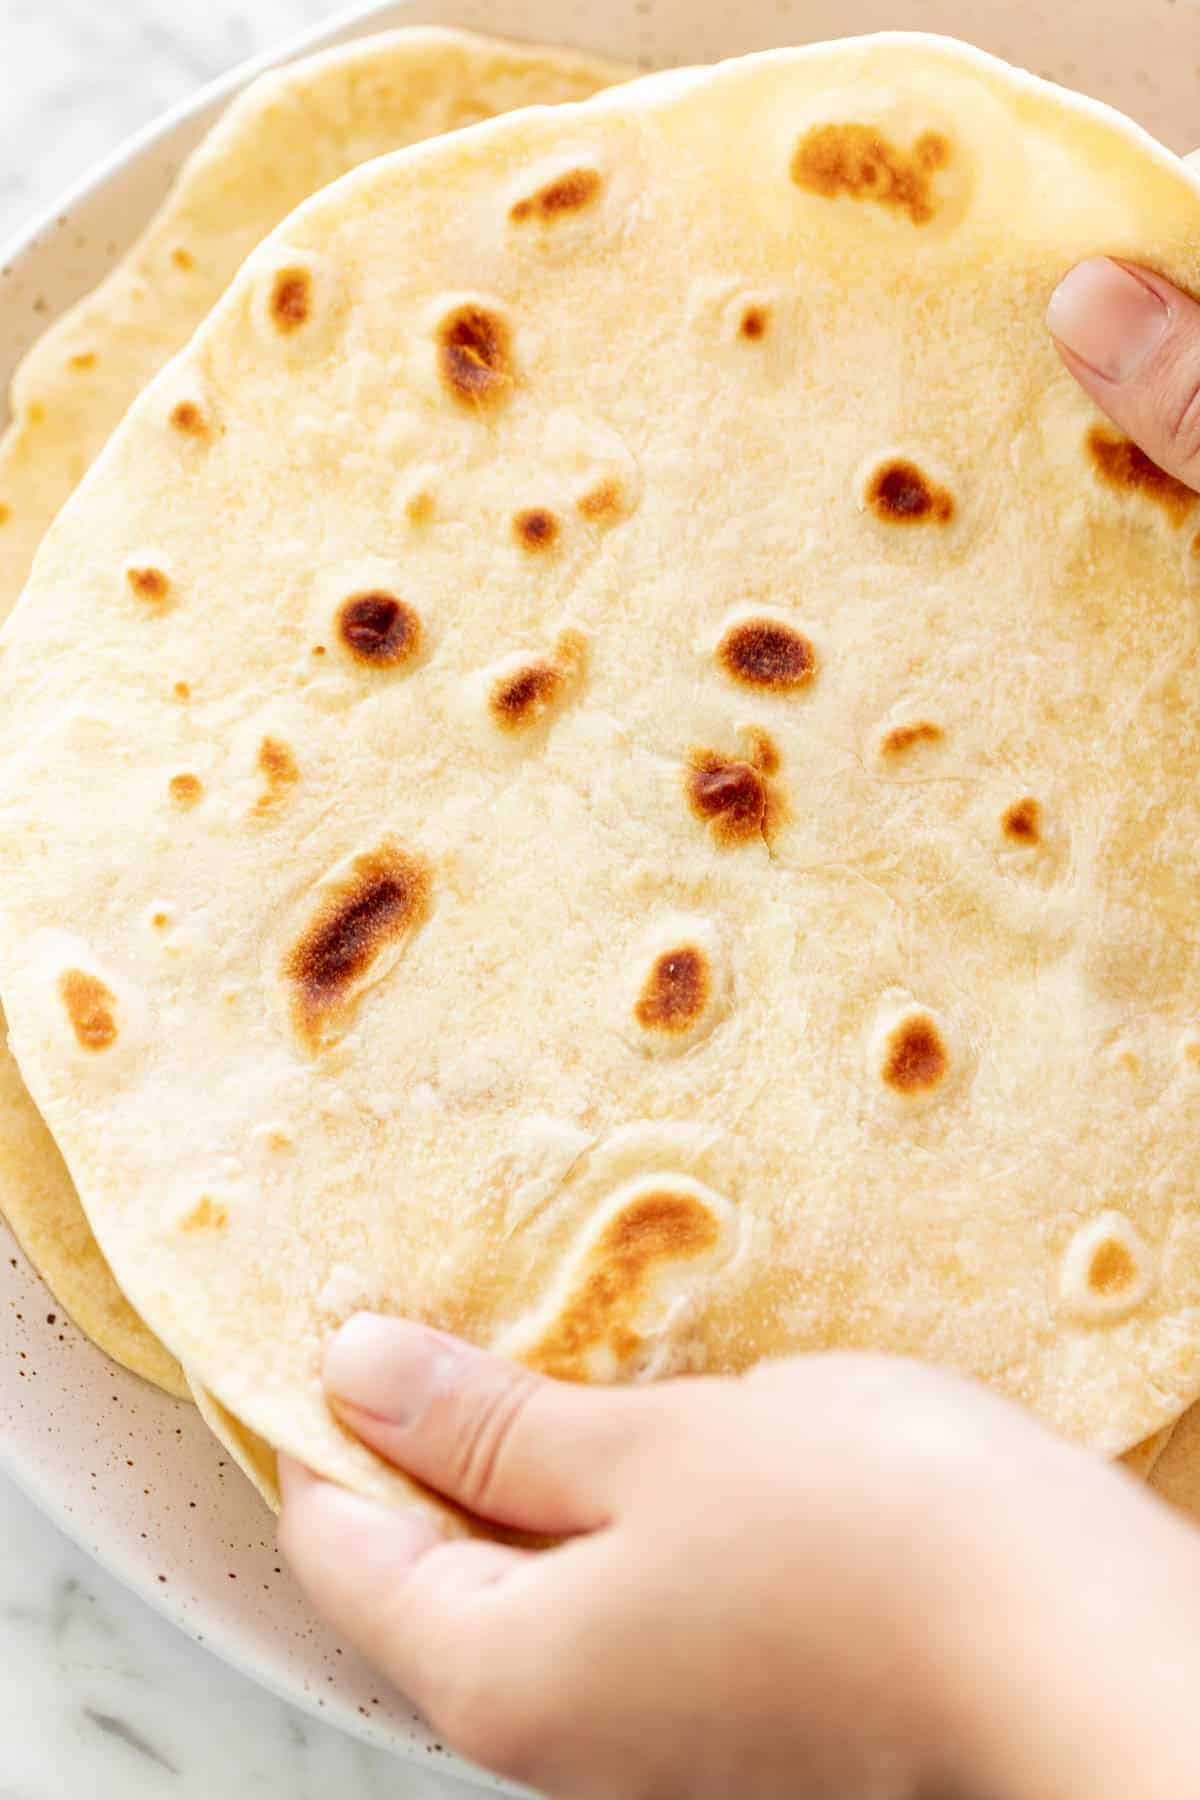 Holding a Flour Tortilla to show size | cafedelites.com